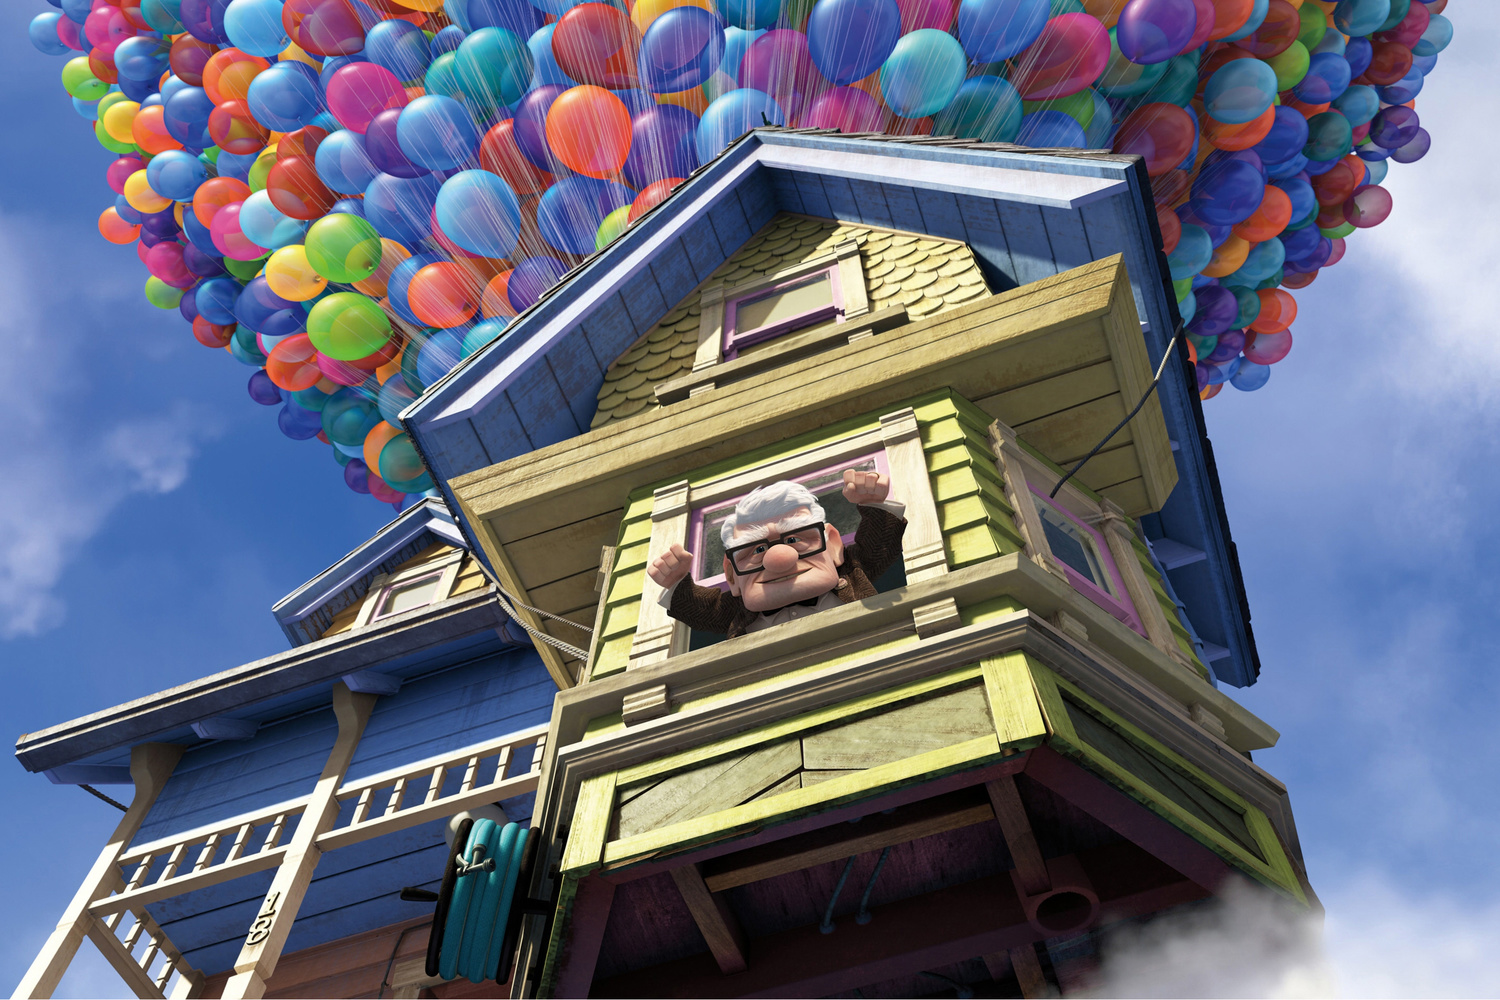 Up. 2009. USA. Directed by Pete Docter, Bob Peterson. Courtesy Buena Vista Pictures/Photofest